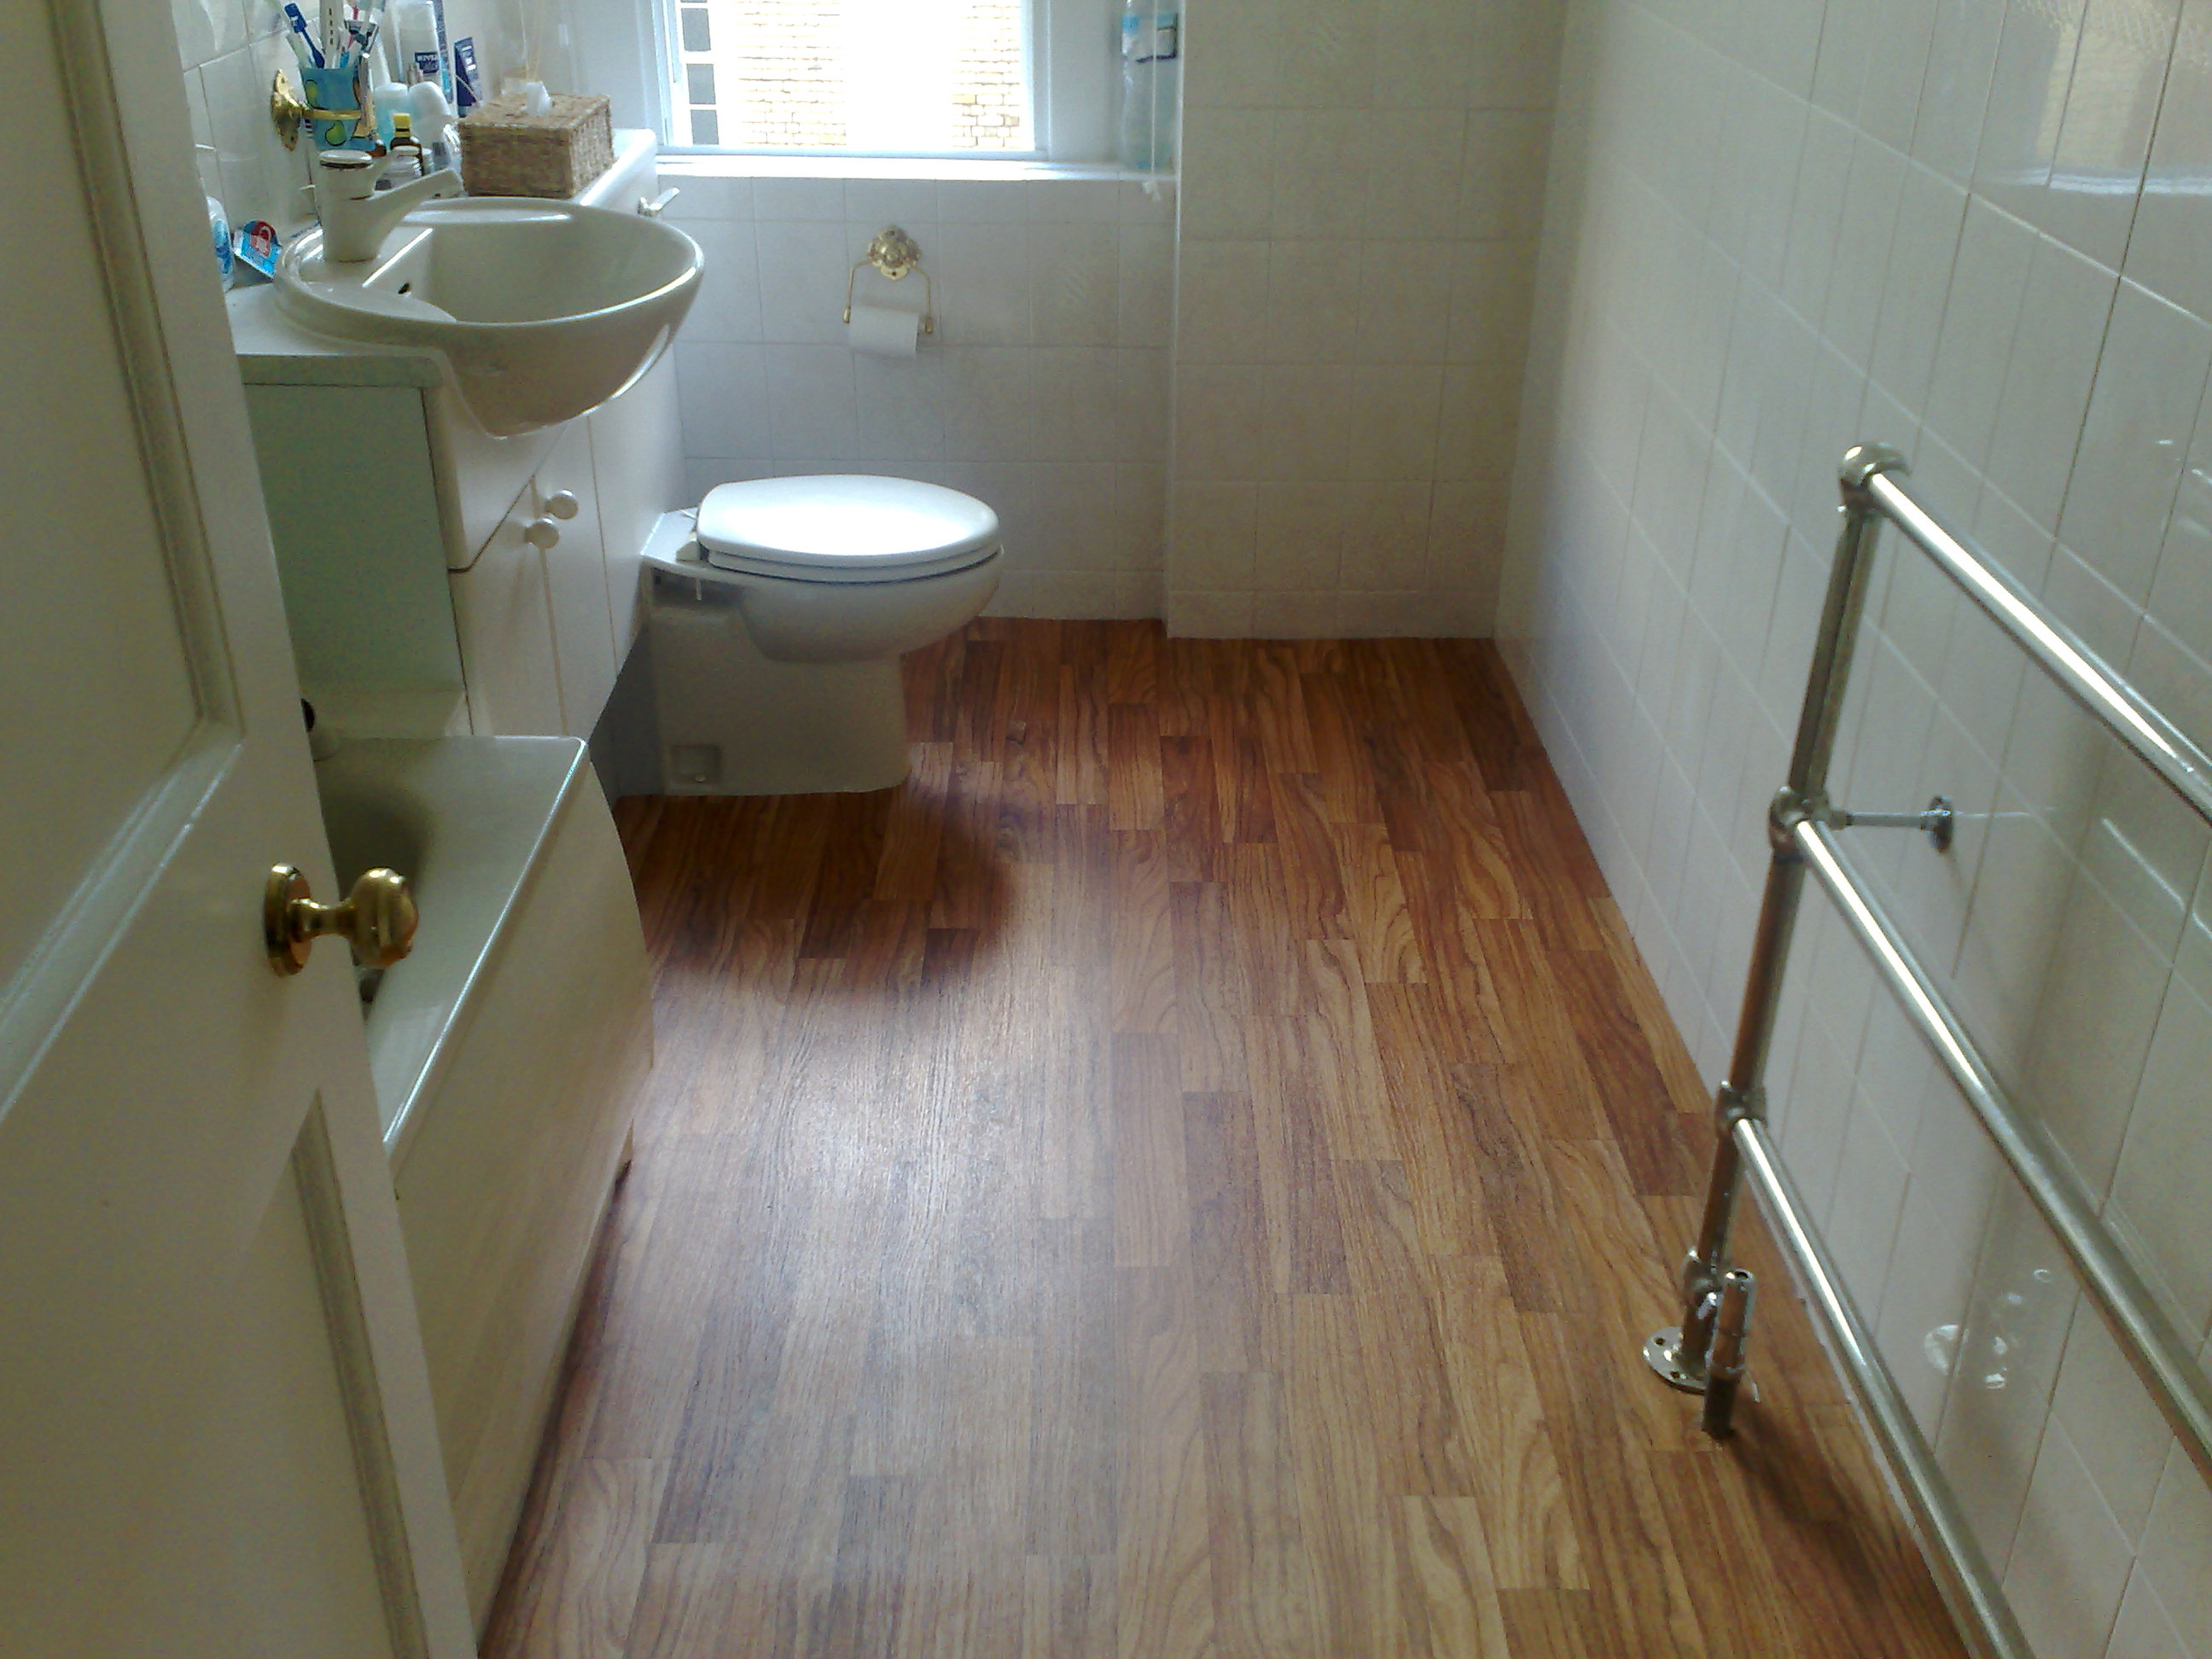 Bathroom wood flooring 2015 best auto reviews for Wood floor bathroom